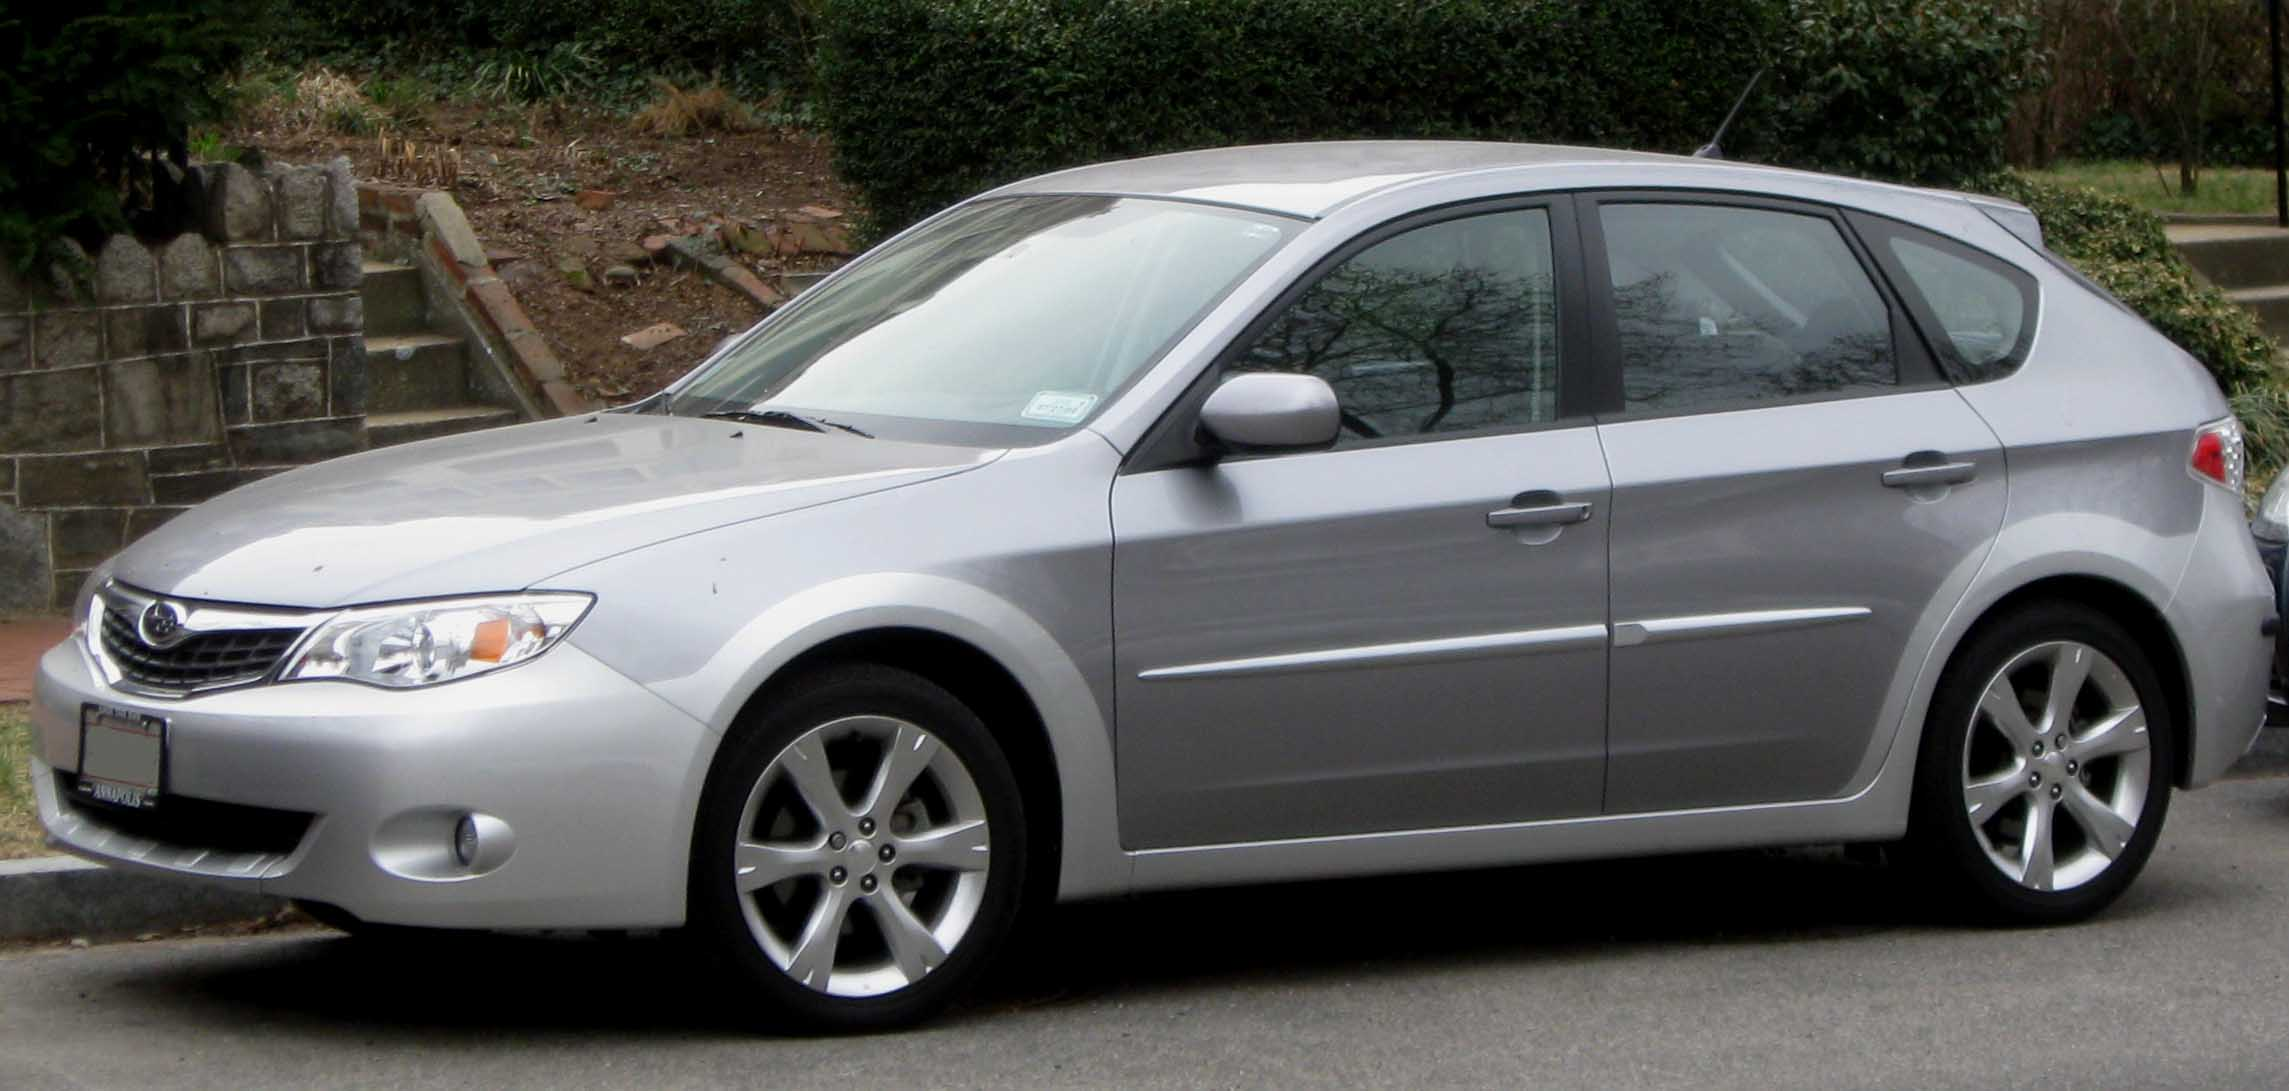 Pictures of subaru legacy wagon 3 2002